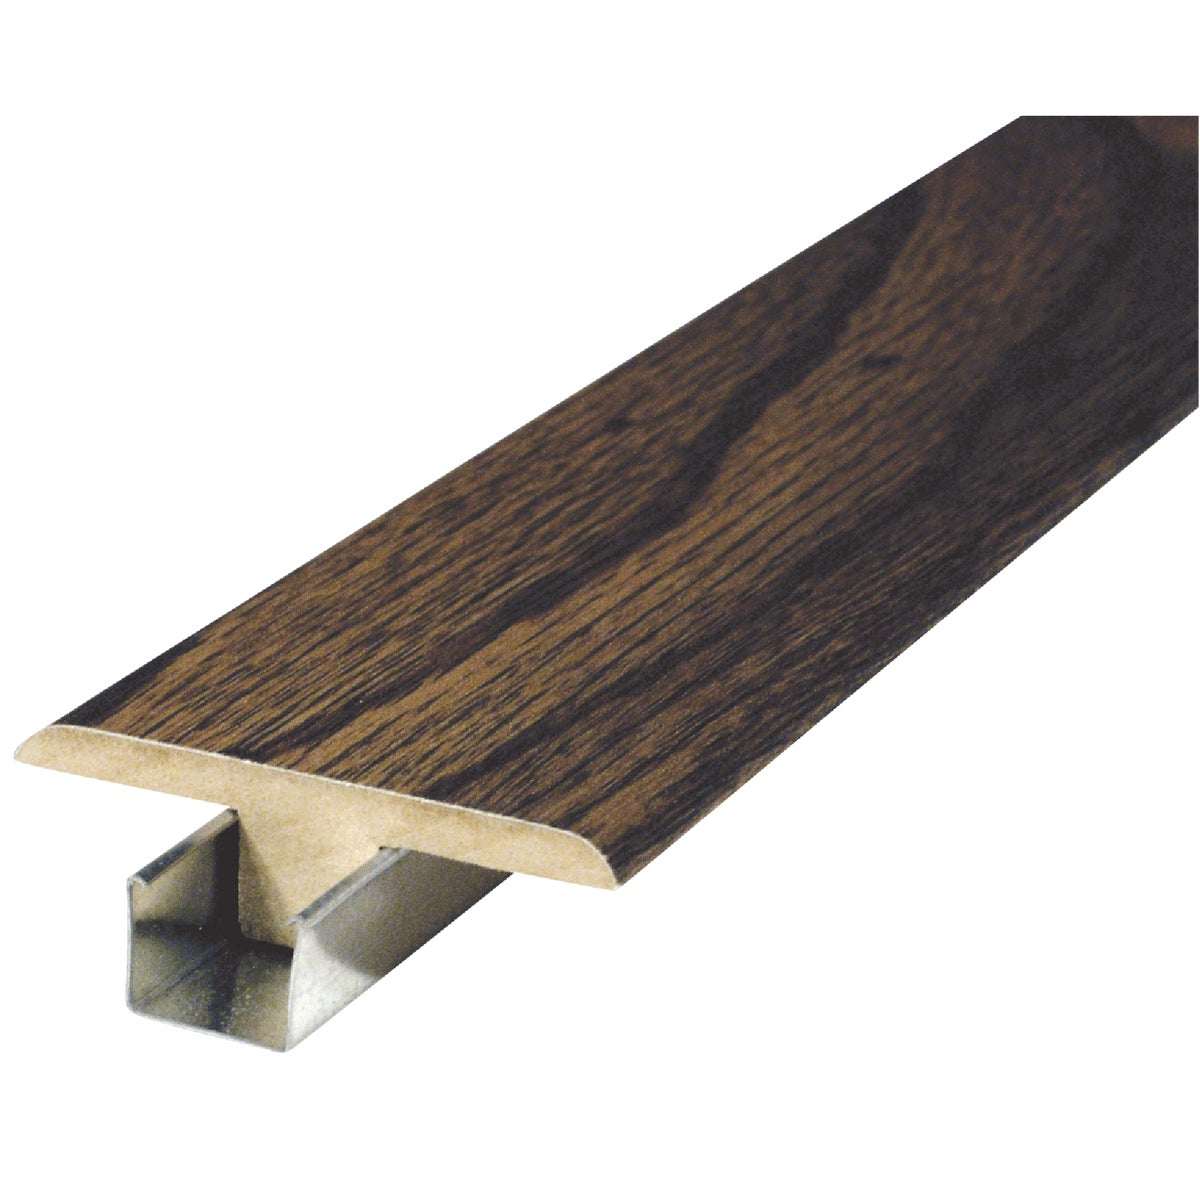 "72"" TN/HRTG OAK T-MOLD - 04324238 by Zamma Corporation"